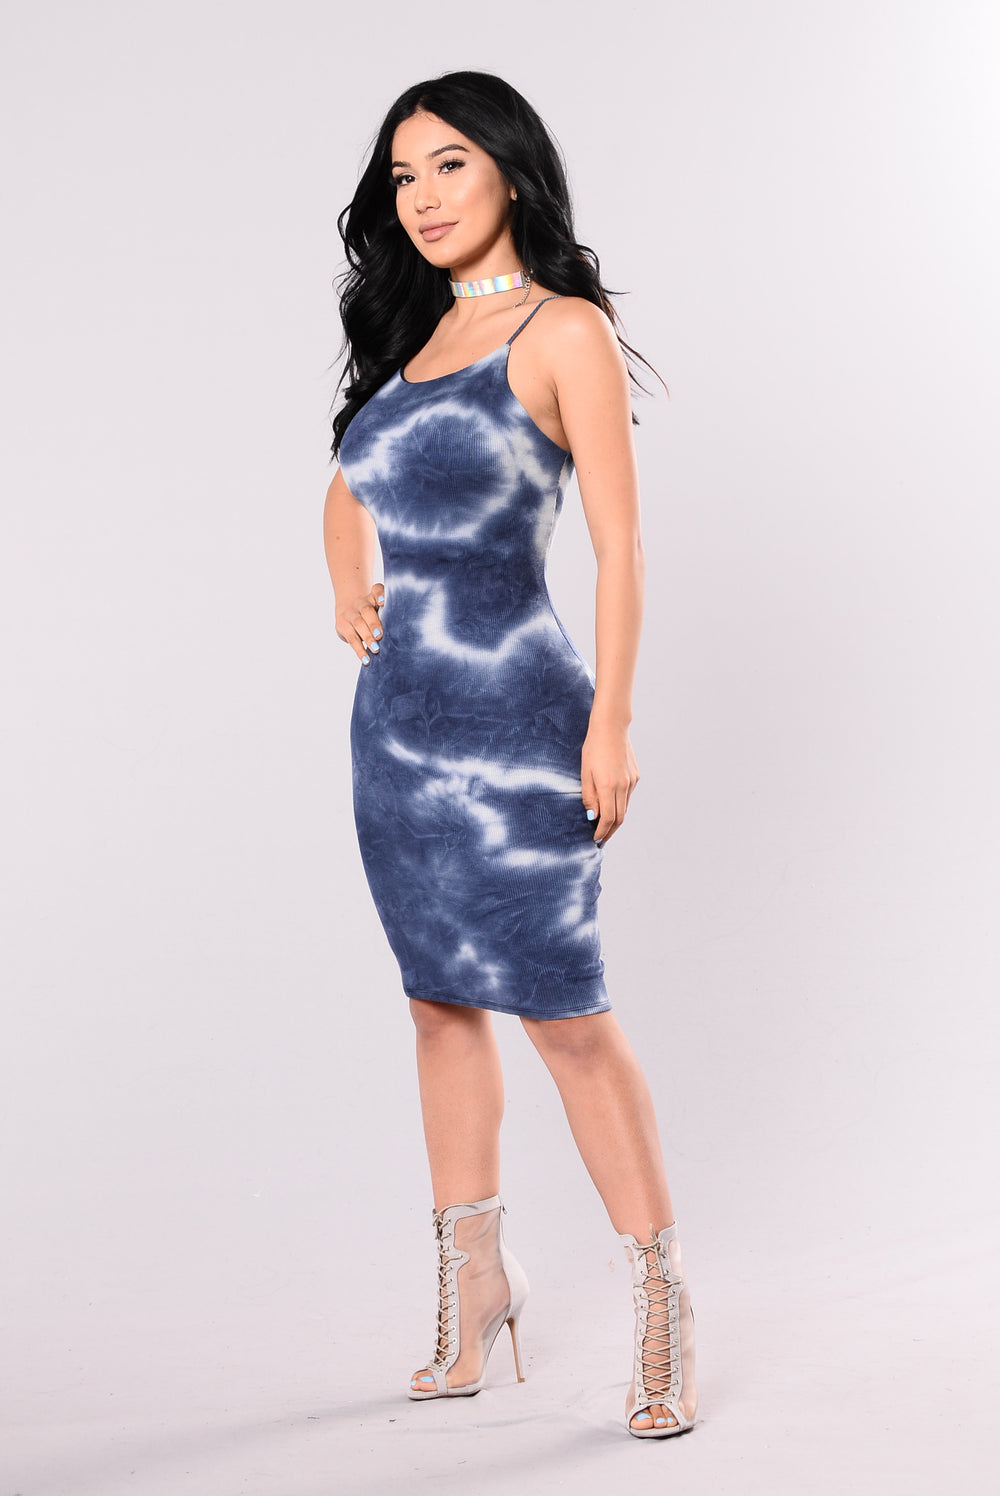 Close To You Tie Dye Dress - Navy